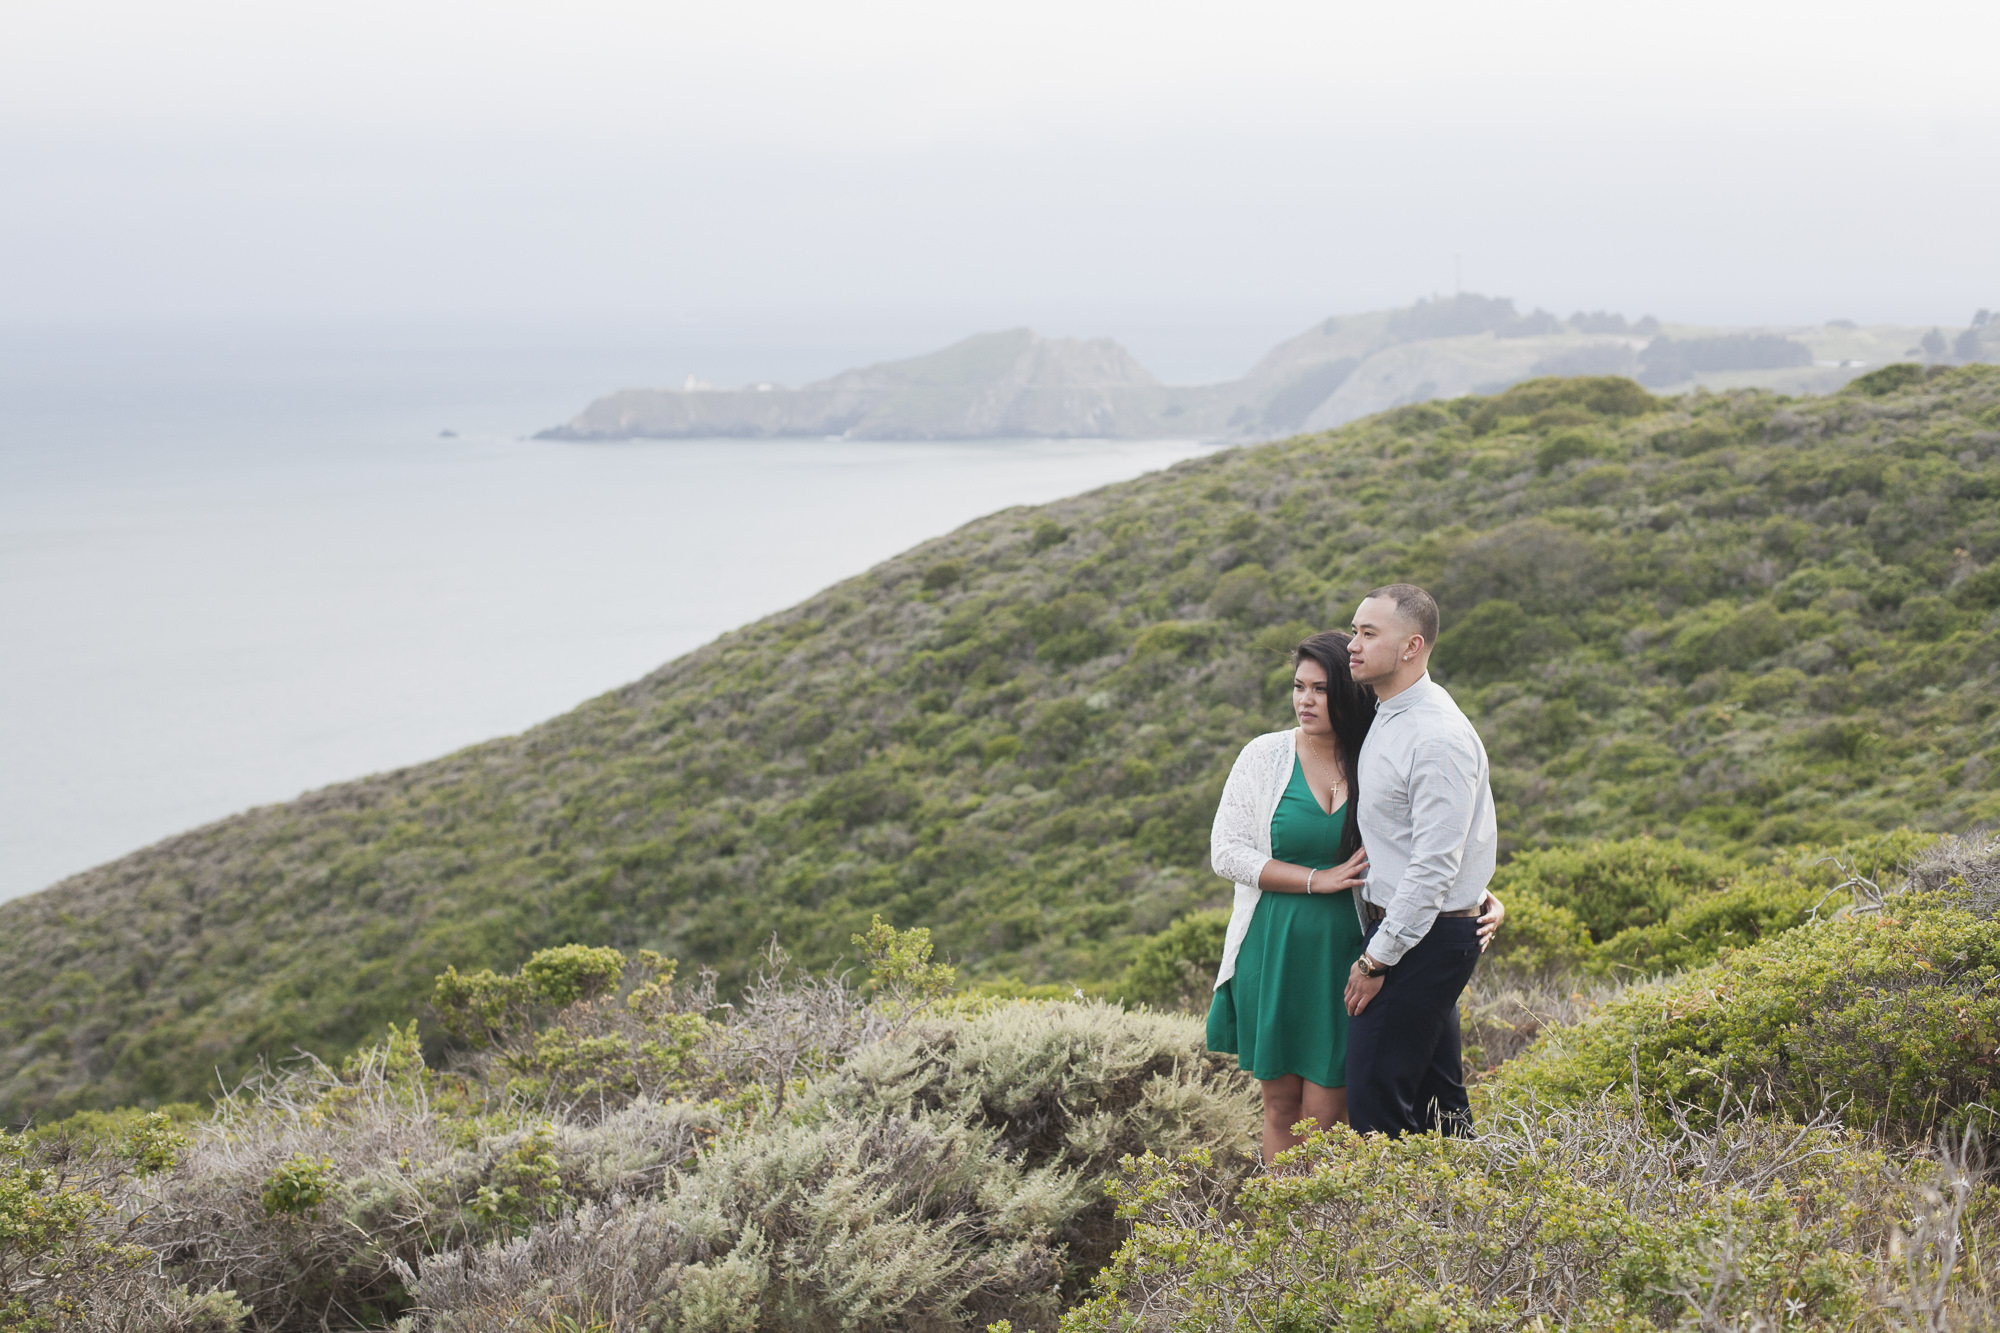 Couple enjoy the view in the green Marin Headlands